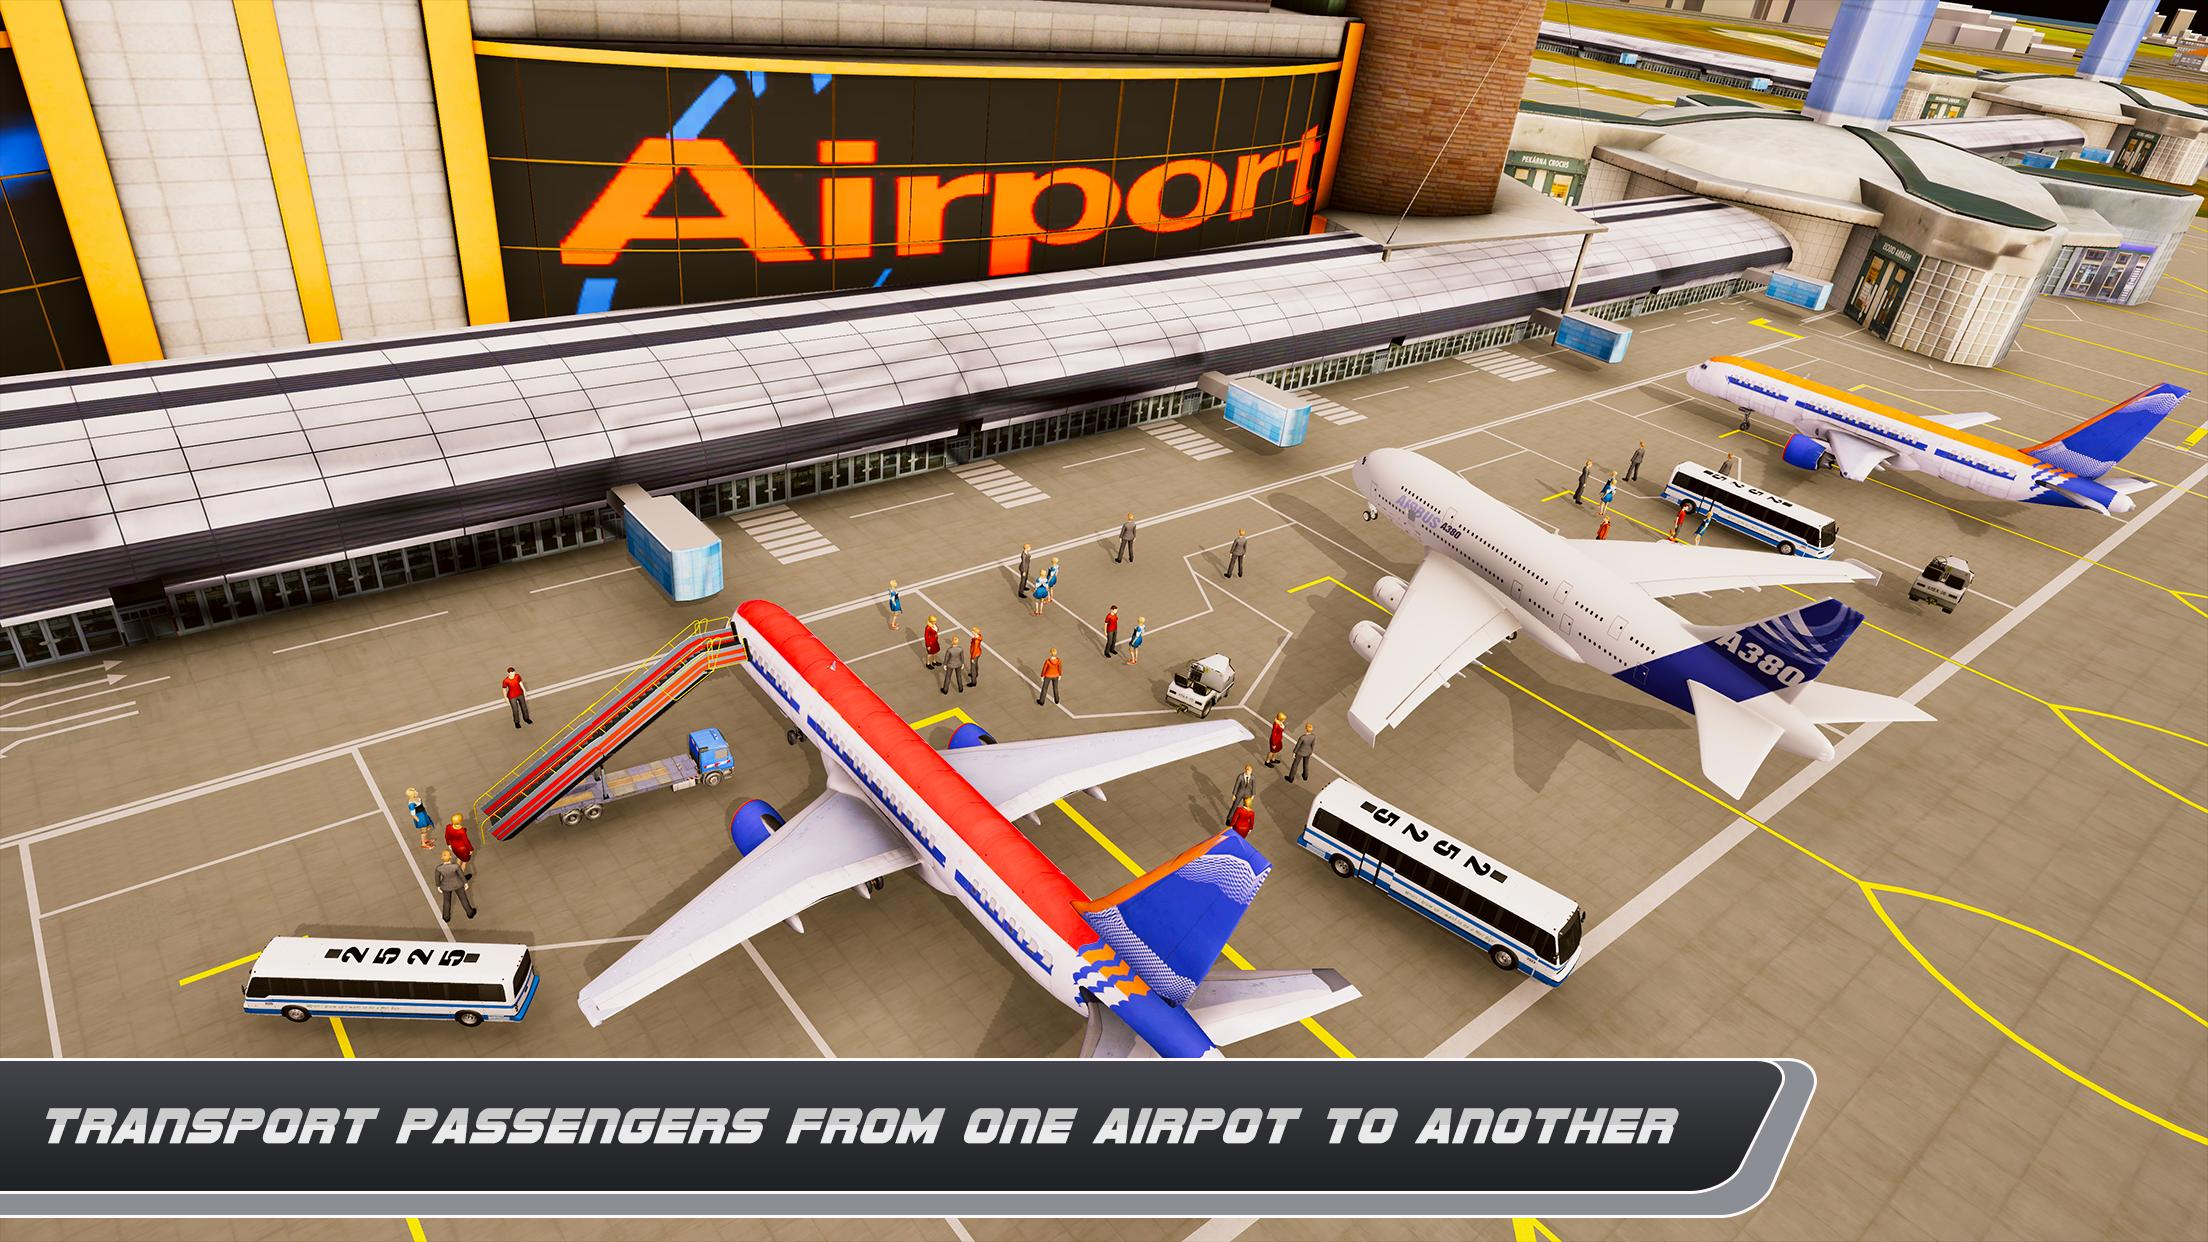 Airplane Real Flight Simulator 2020 Plane Games 5.4 Screenshot 14